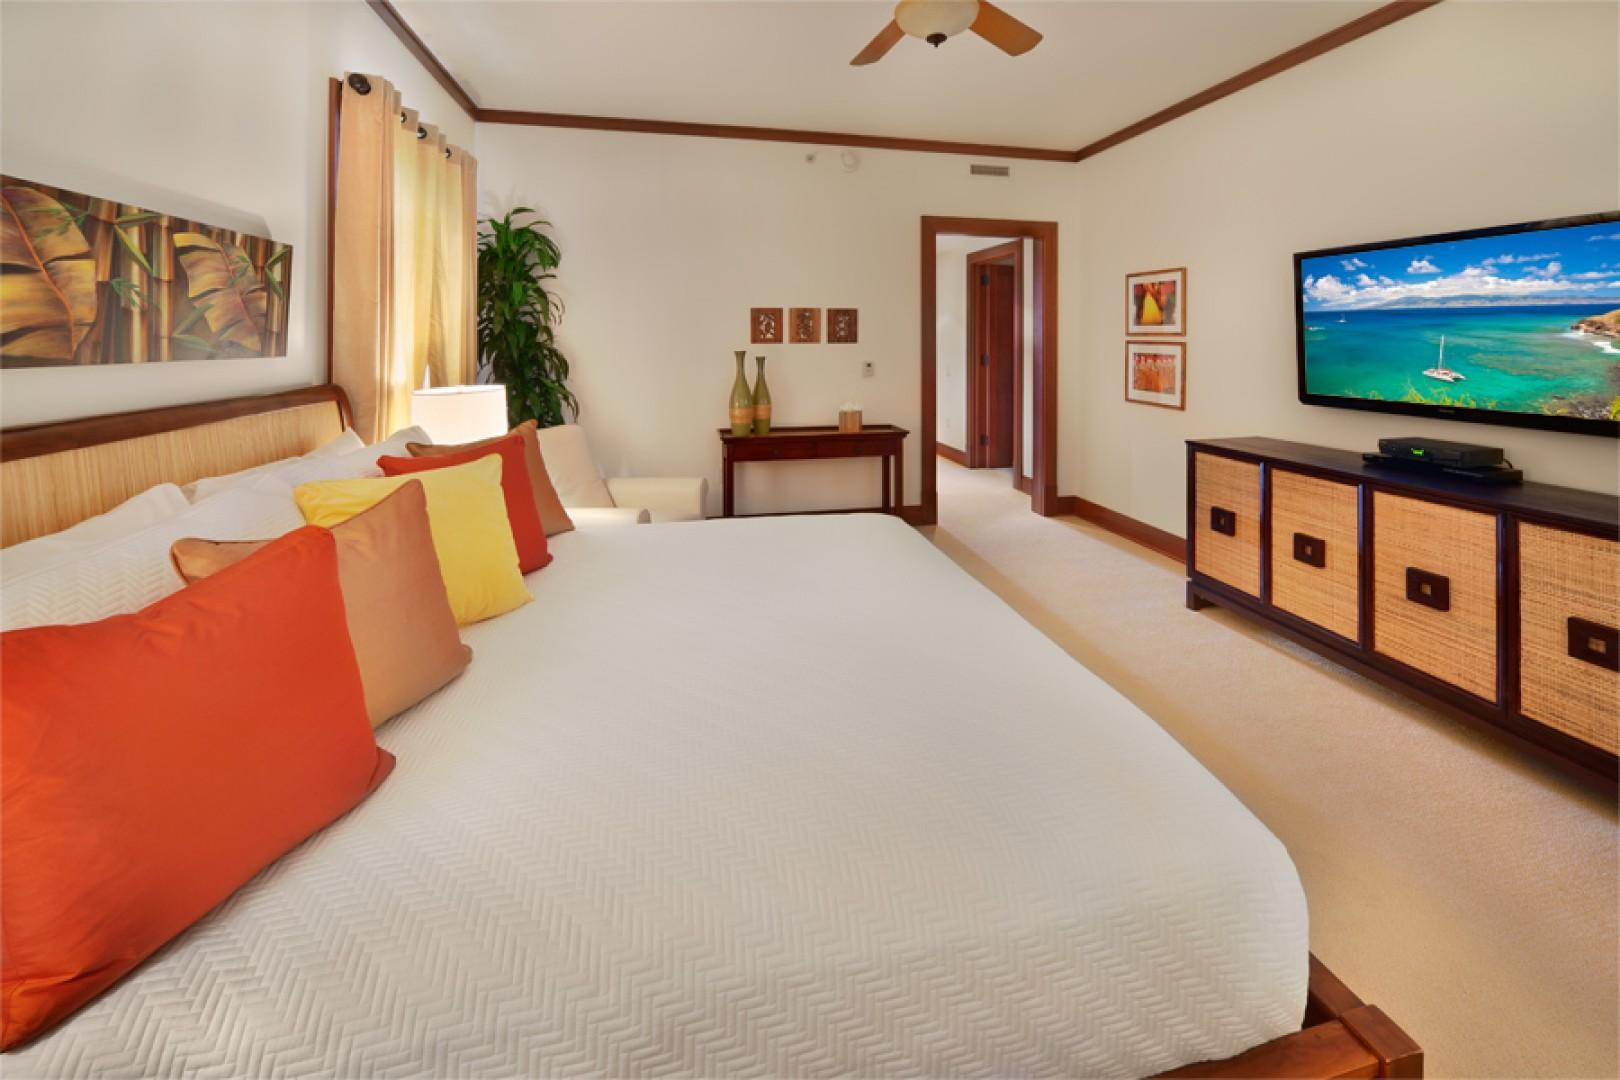 Sea Mist Villa 2403 - Second Master Bedroom with Partial Oceanview, King Bed, Walk-in closet, Large Screen HD TV & HD Cable, HD CD/DVD, iPod dock, Velvet Lined Drapery, Carpet, Reclining Vanilla Leather Reading Chair, Private En-suite Bath